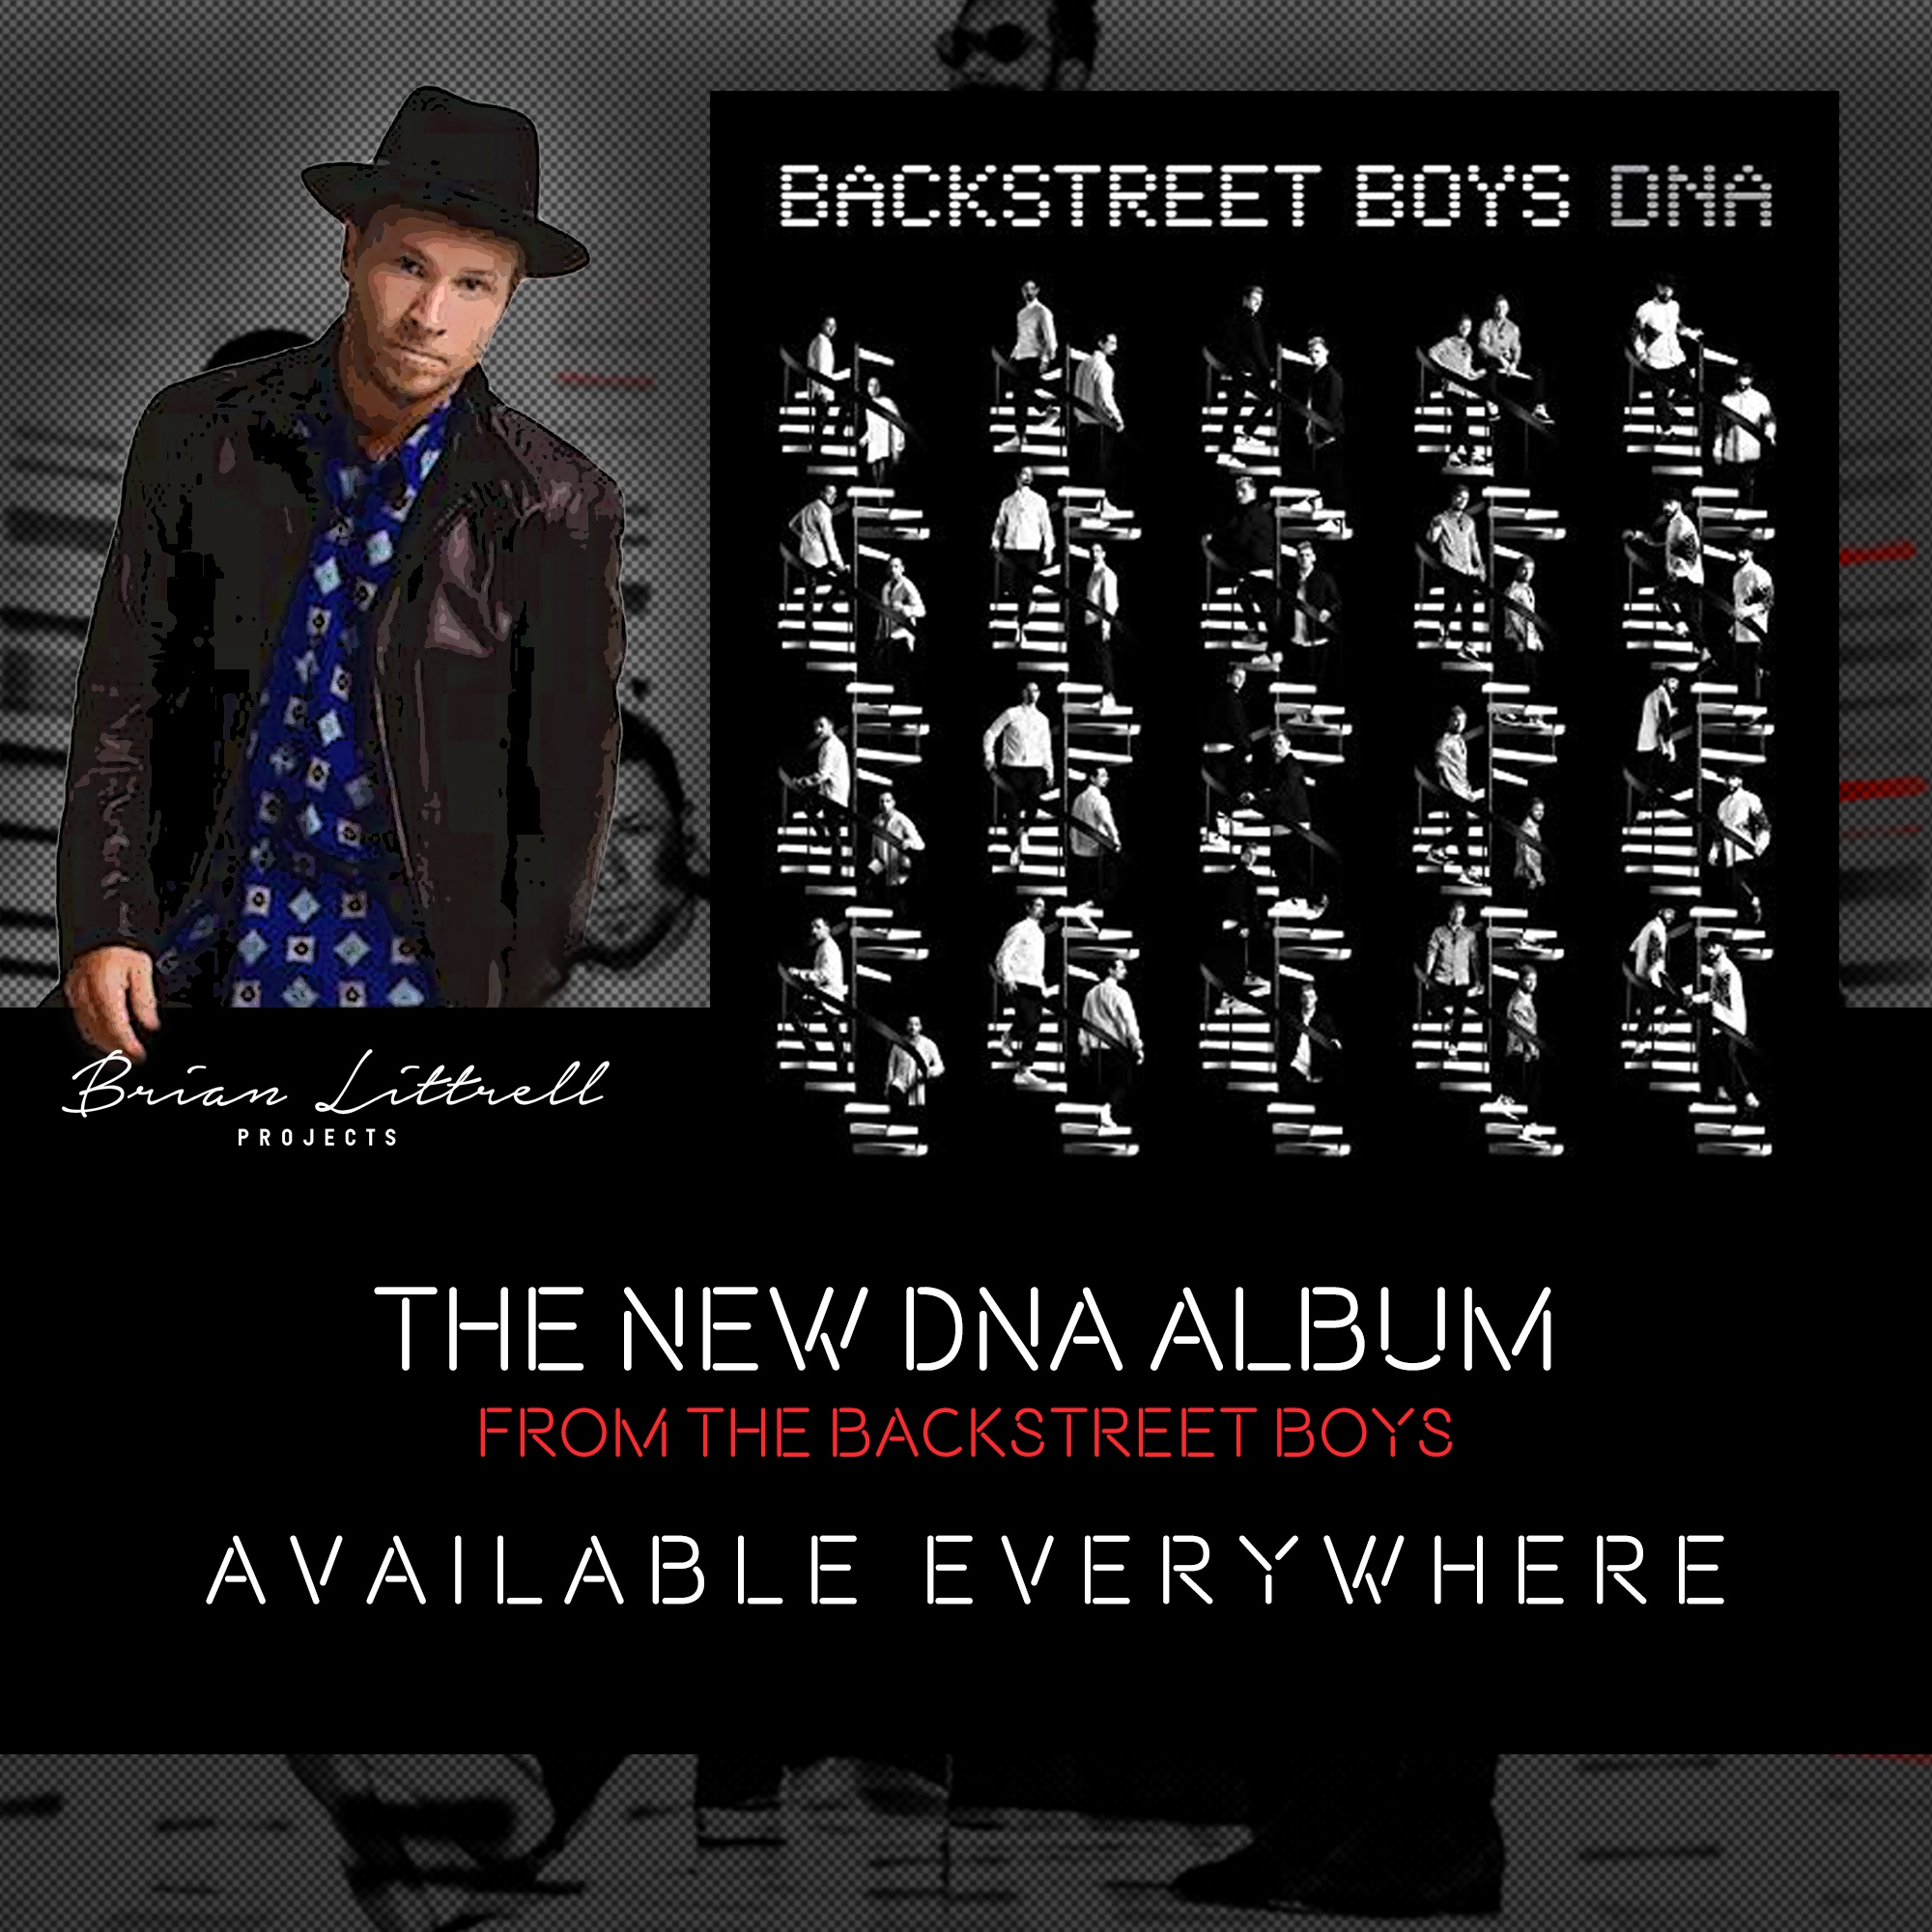 The new #DNA album from the Backstreet Boys available NOW